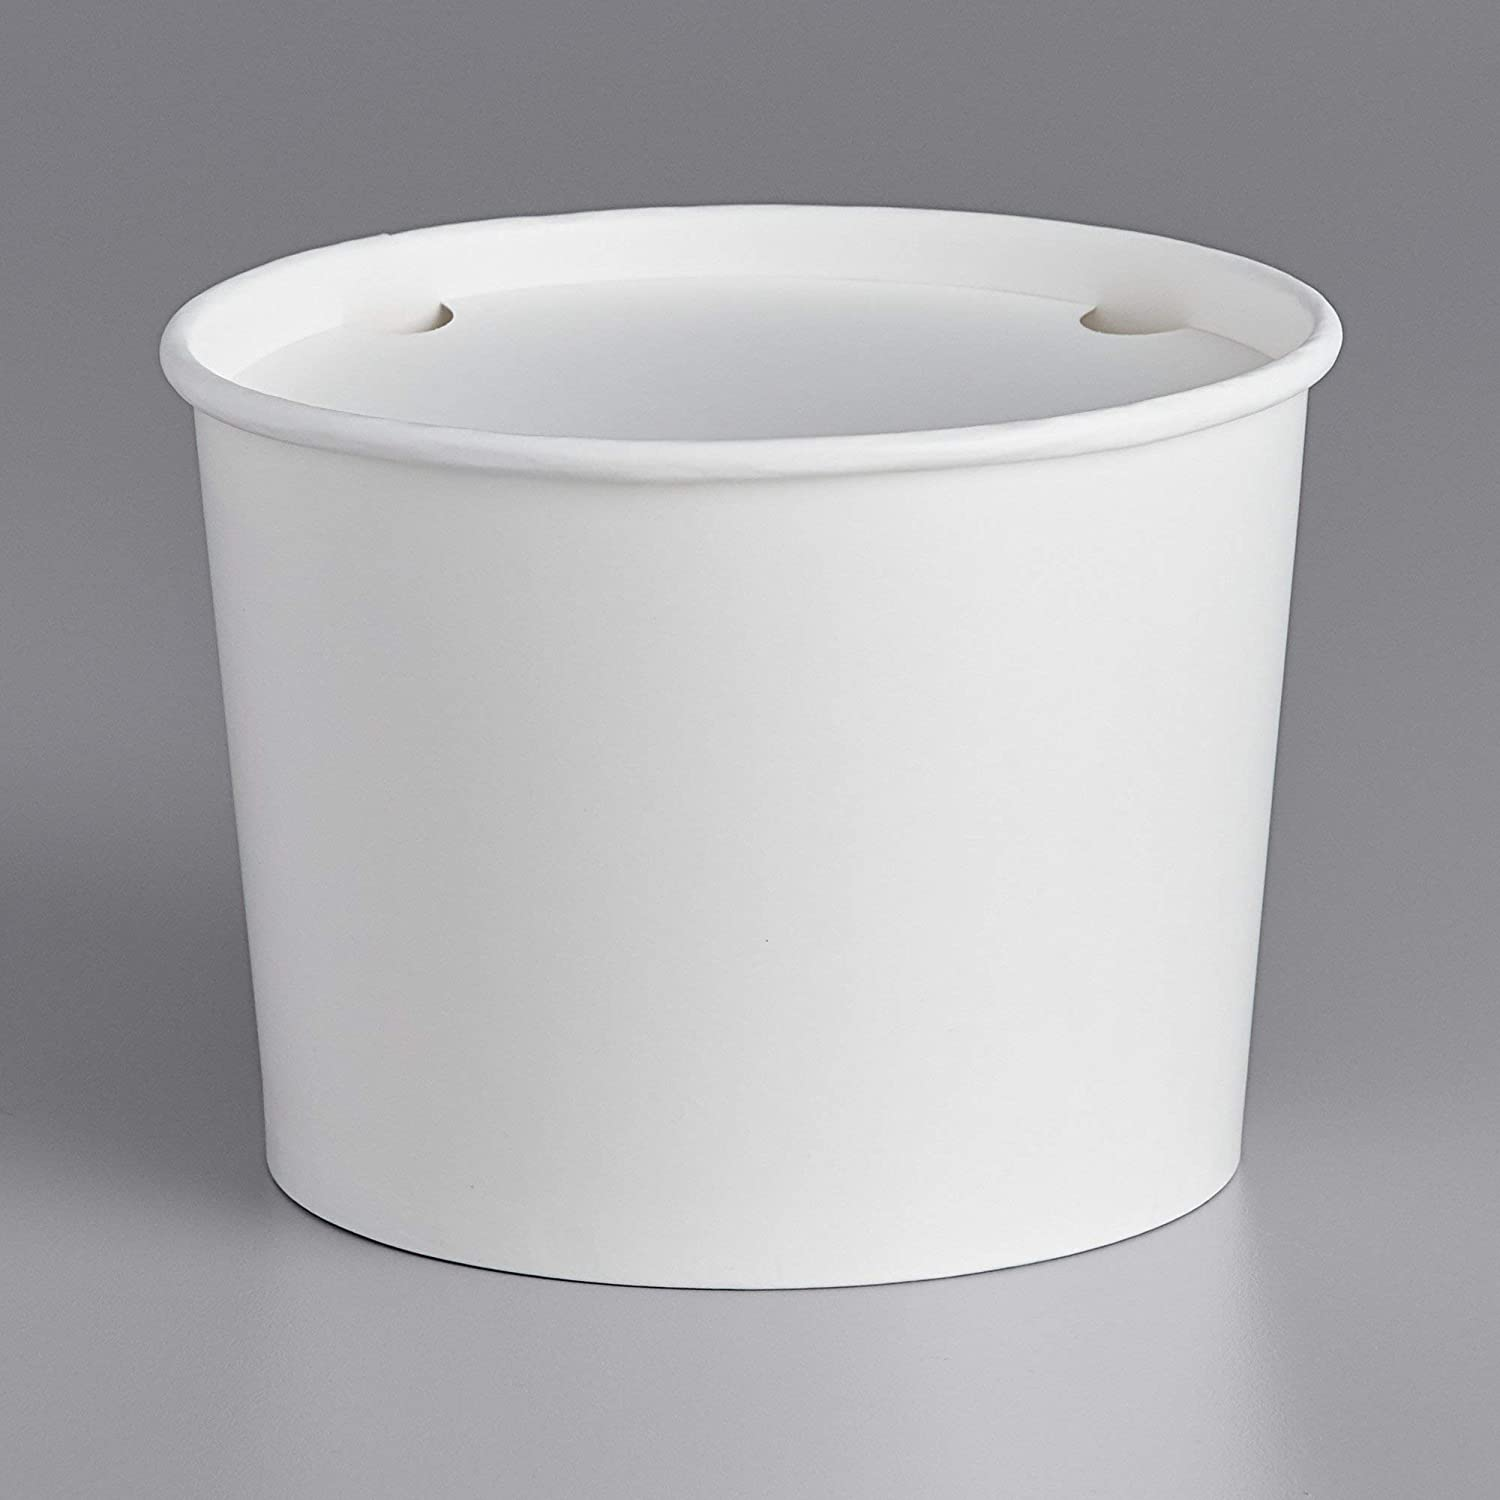 (64 oz, White Bucket, Pack of 10) tekbotic Disposable Paper Cardboard Food Buckets with Lids for to Go Orders/Ice/Food Box/Container for Chicken/Burgers/Fries